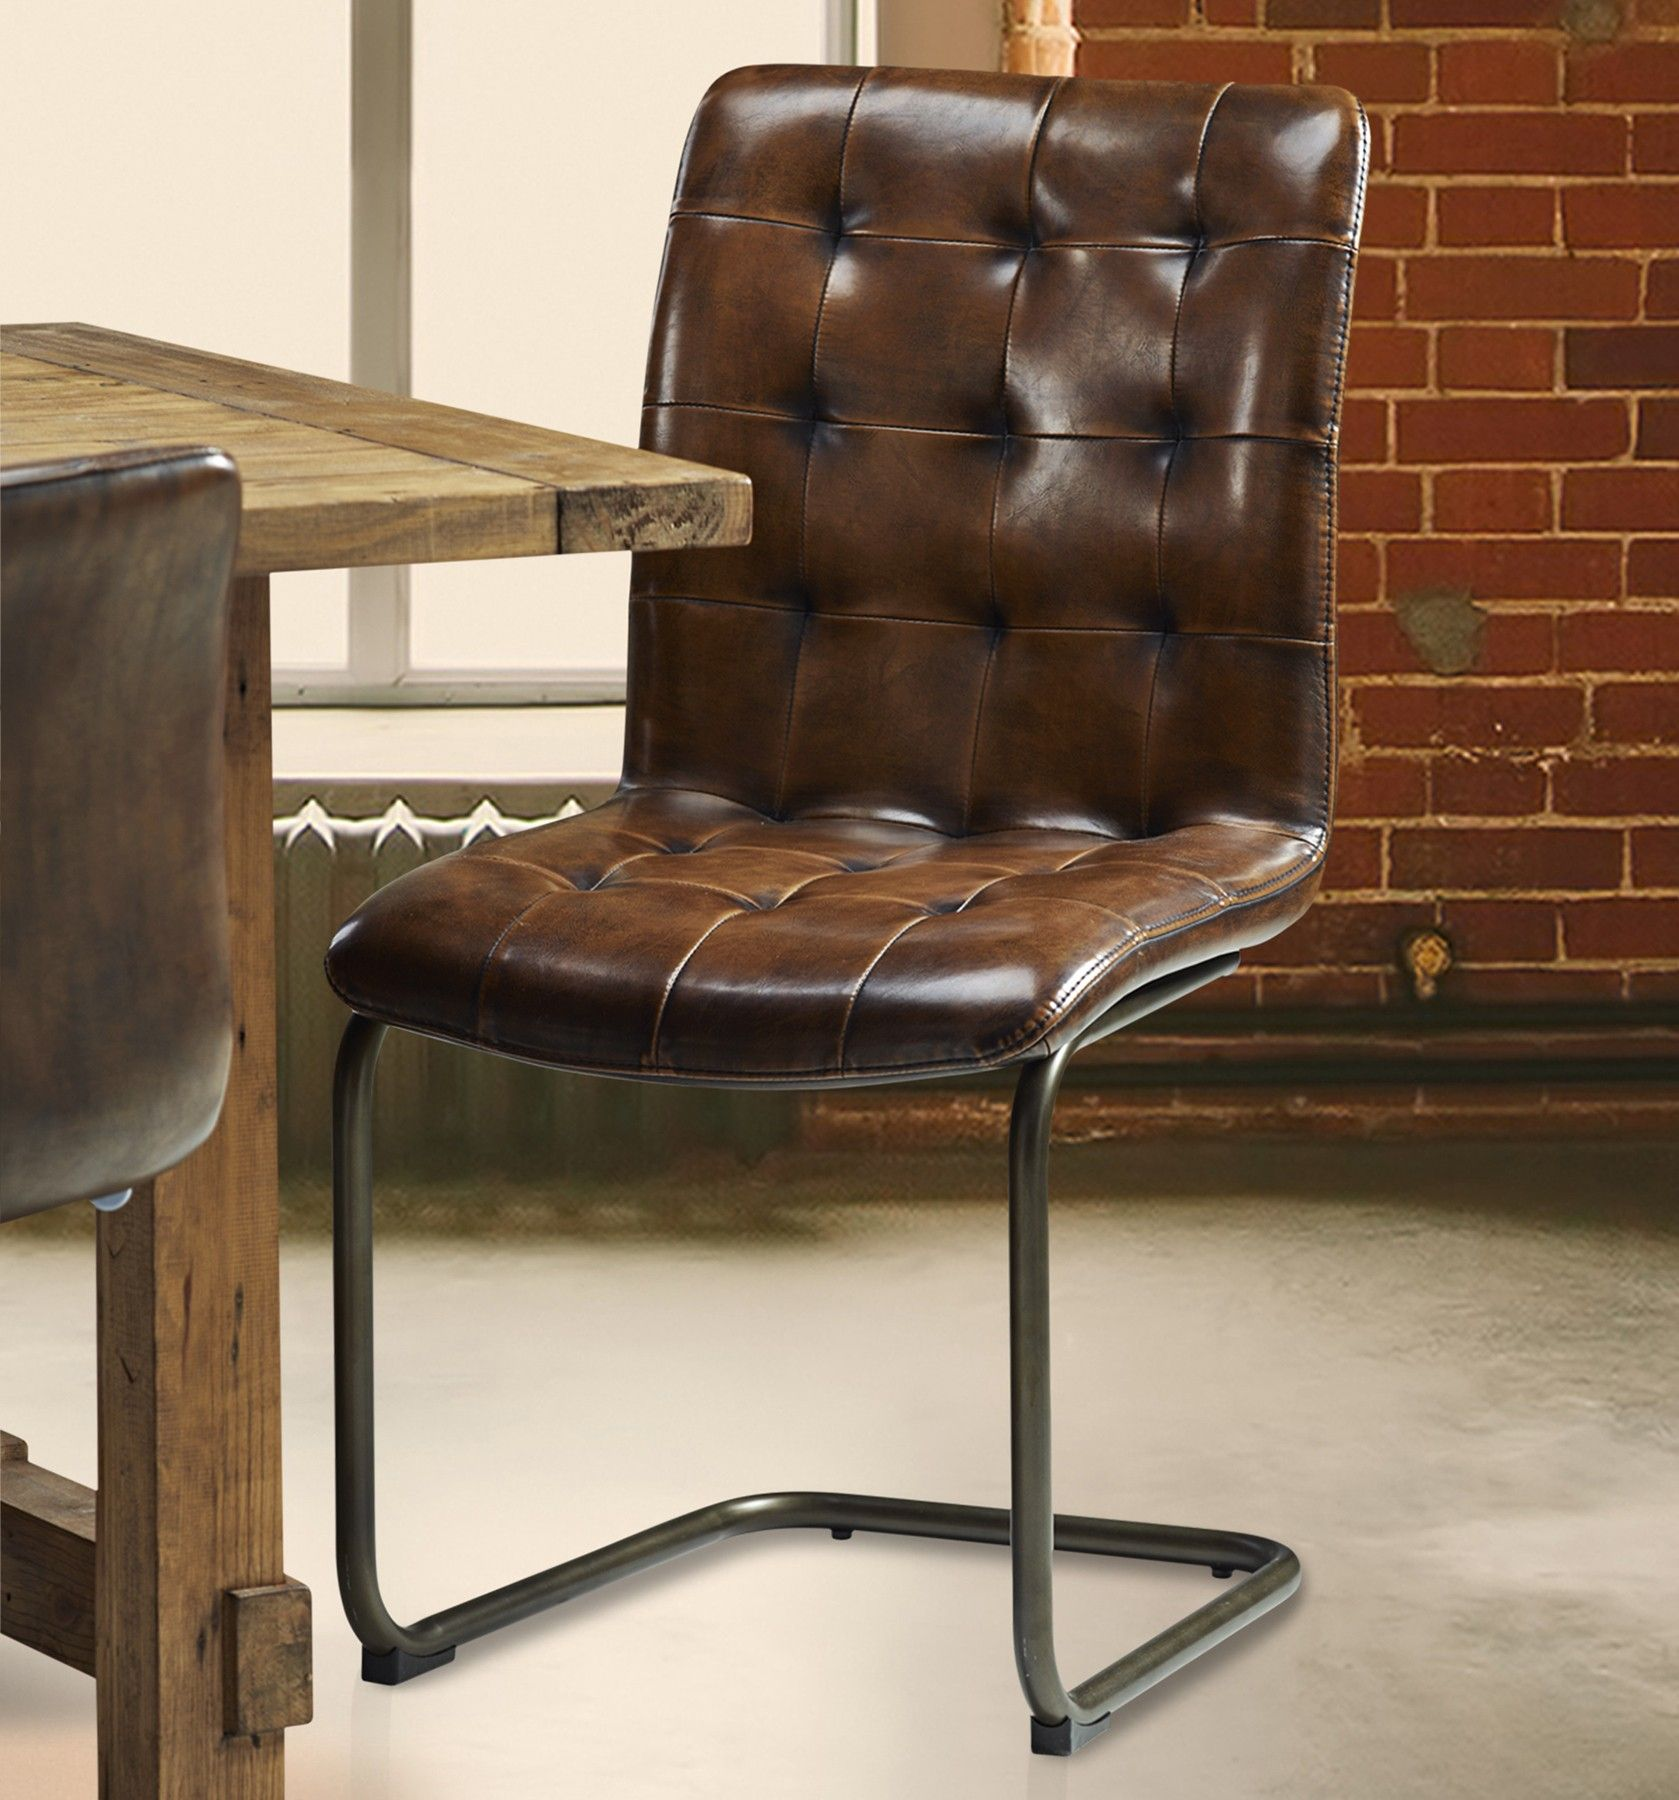 Metal And Leather Chair Vintage Tall Leather Dining Chair Vintage Leather Chair